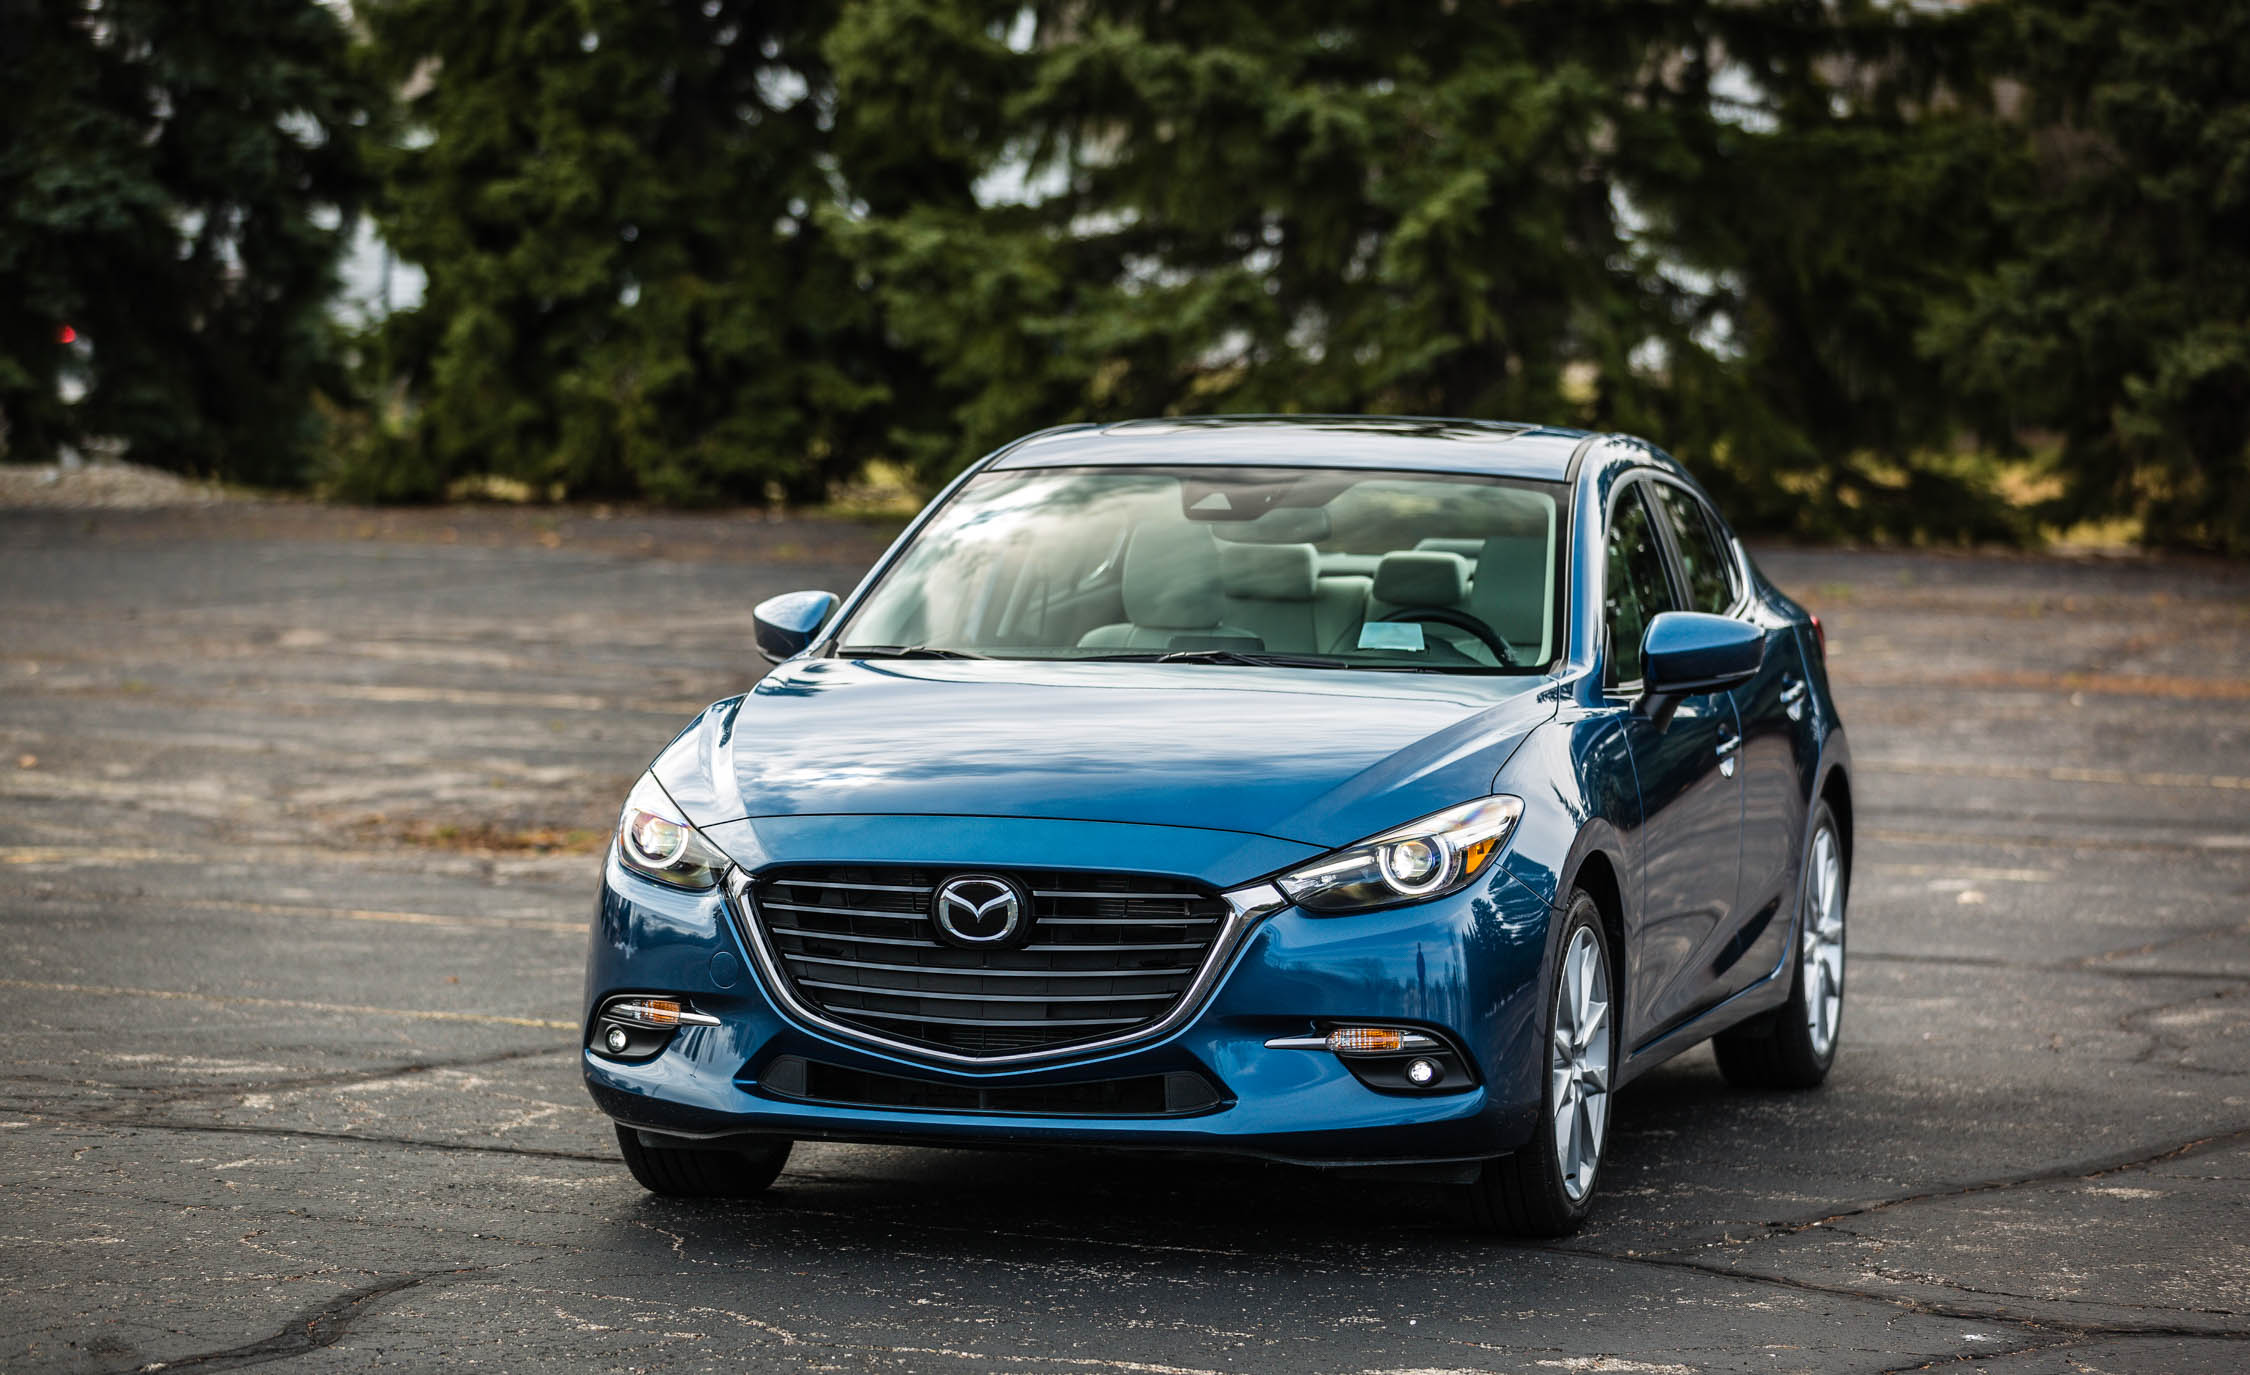 Featured Image of 2017 Mazda 3 Sedan